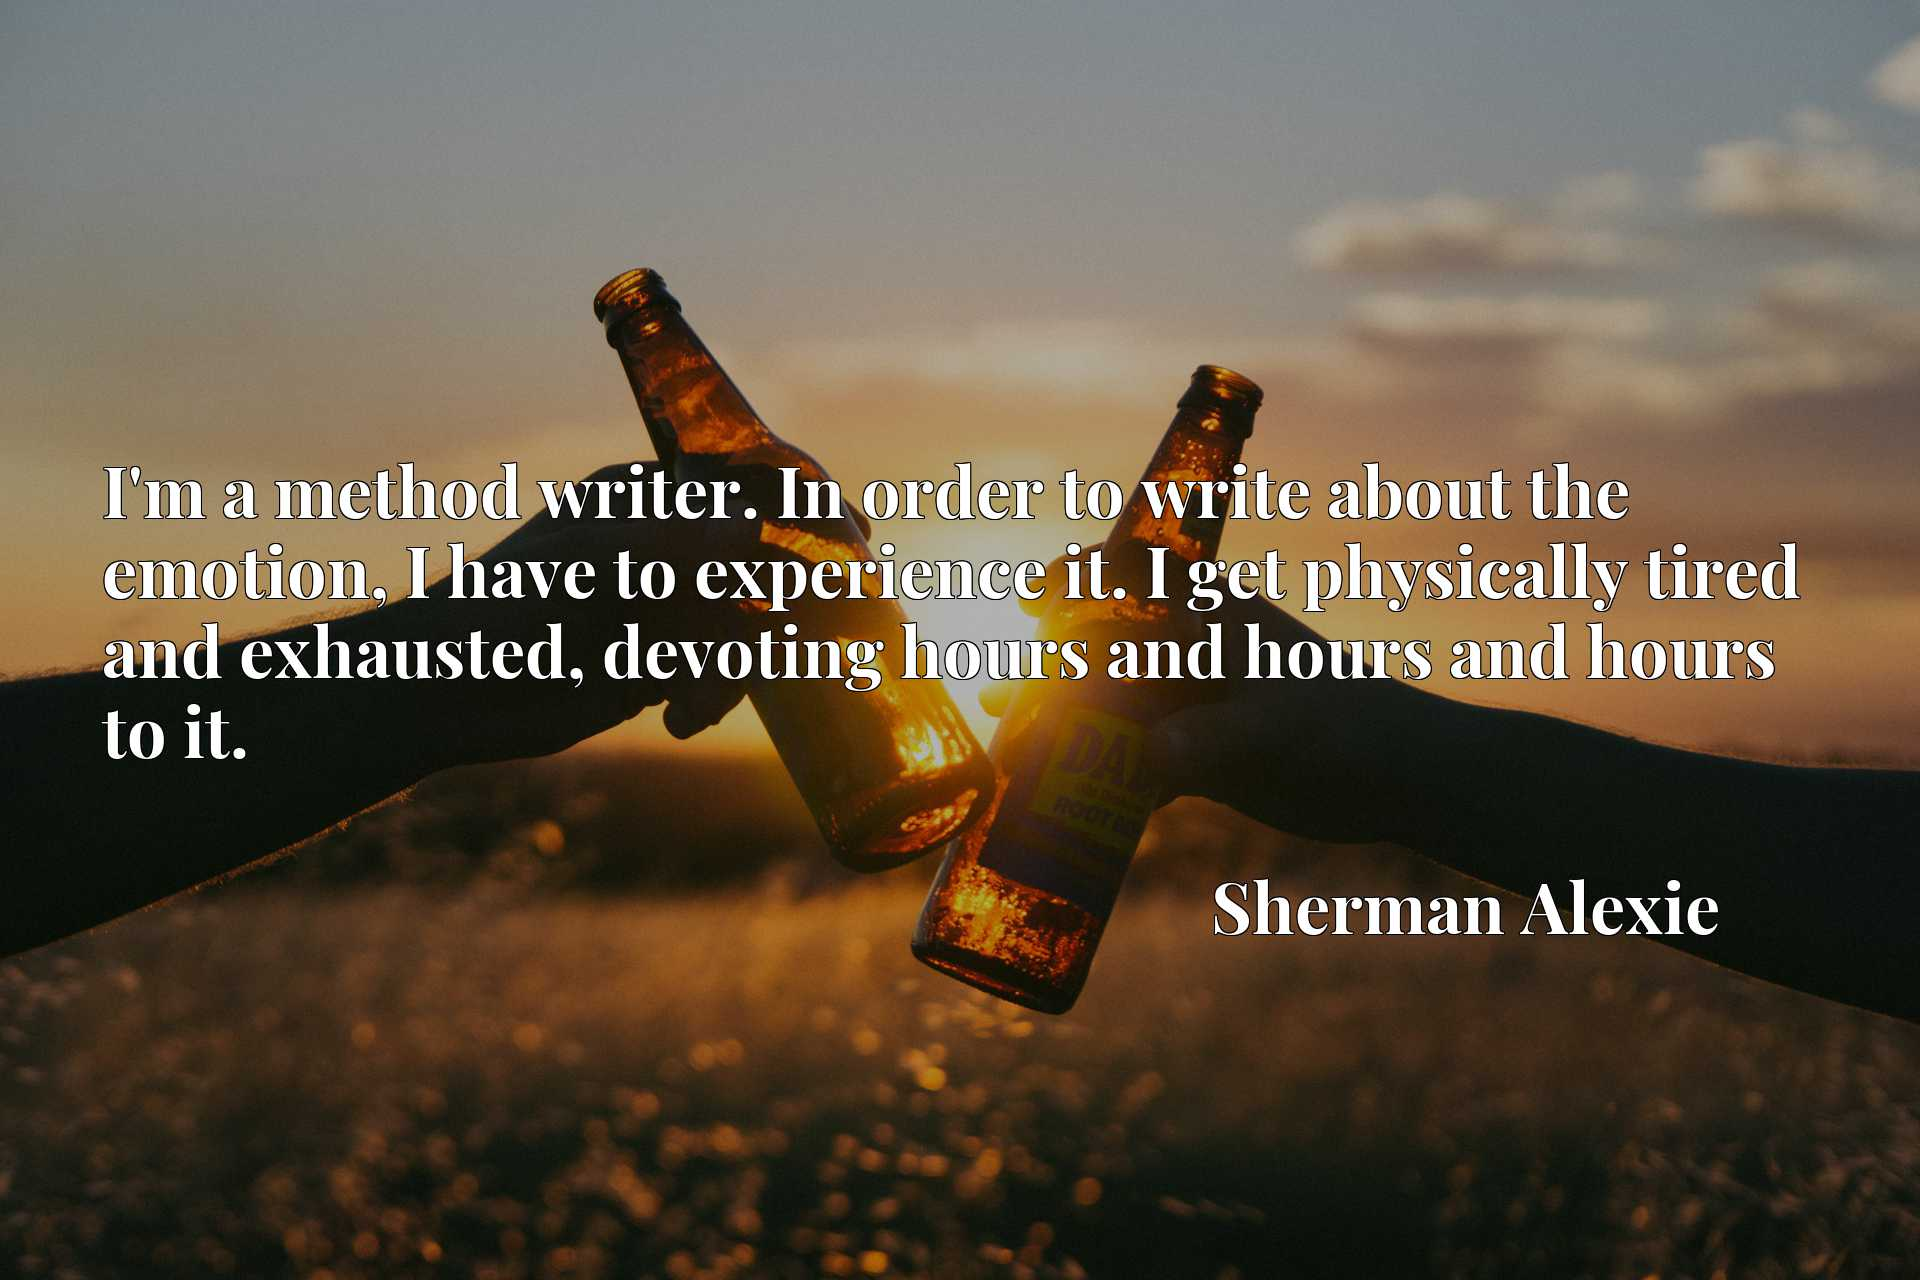 I'm a method writer. In order to write about the emotion, I have to experience it. I get physically tired and exhausted, devoting hours and hours and hours to it.